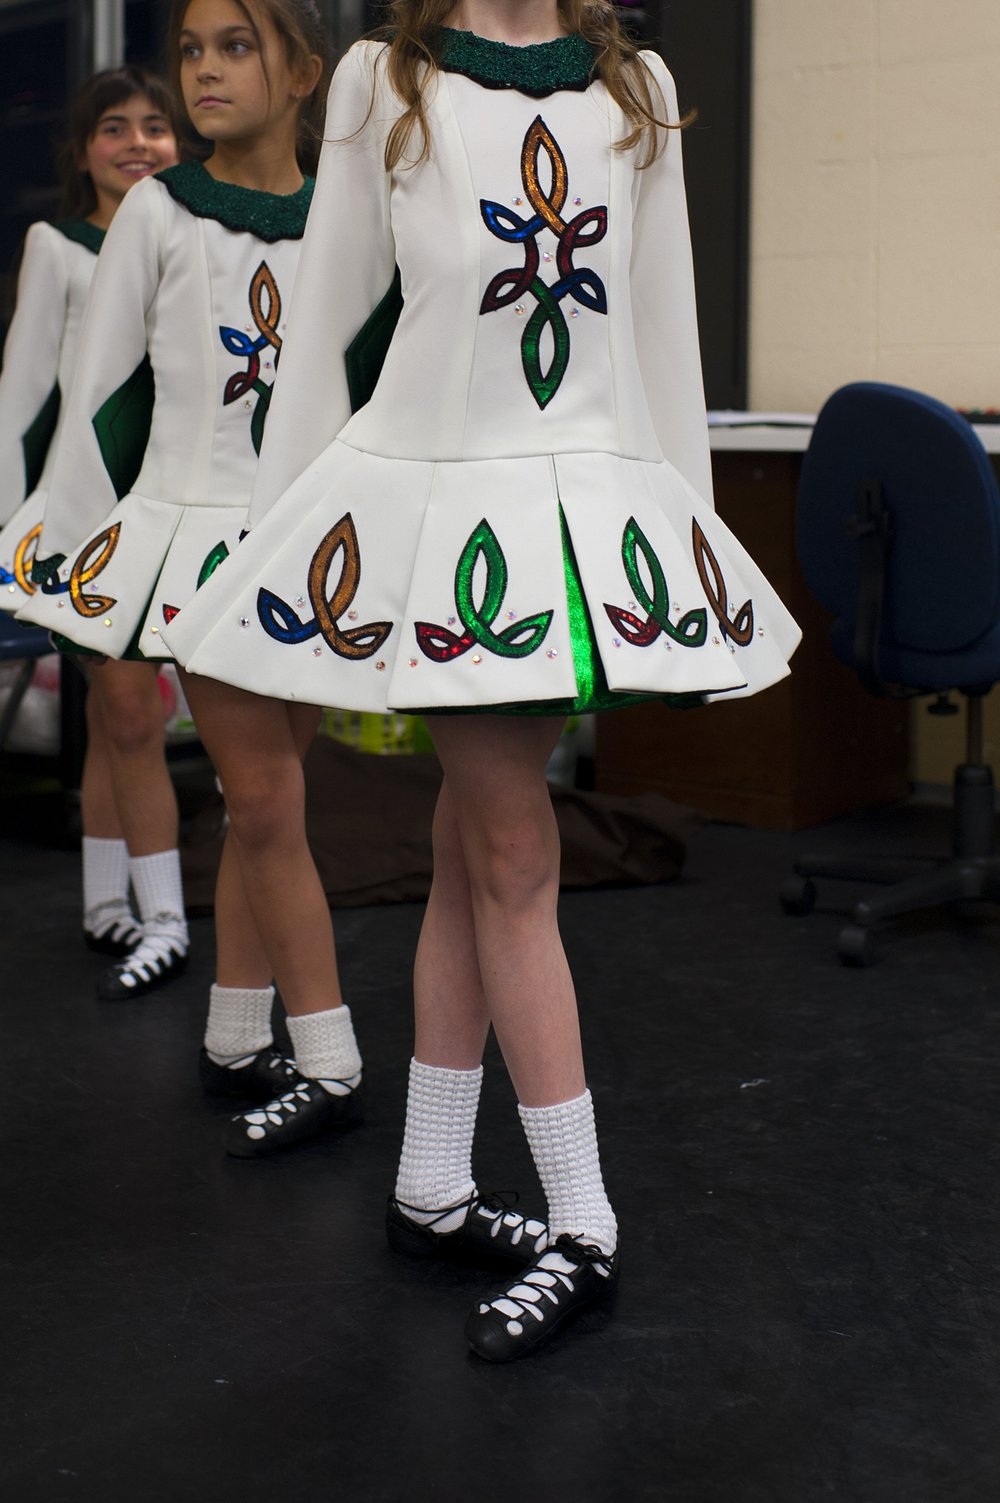 502b2cd4363f NEED SHOES OR SOCKS? The Bernadette Short School of Irish Dance has an extensive  collection of second hand ...